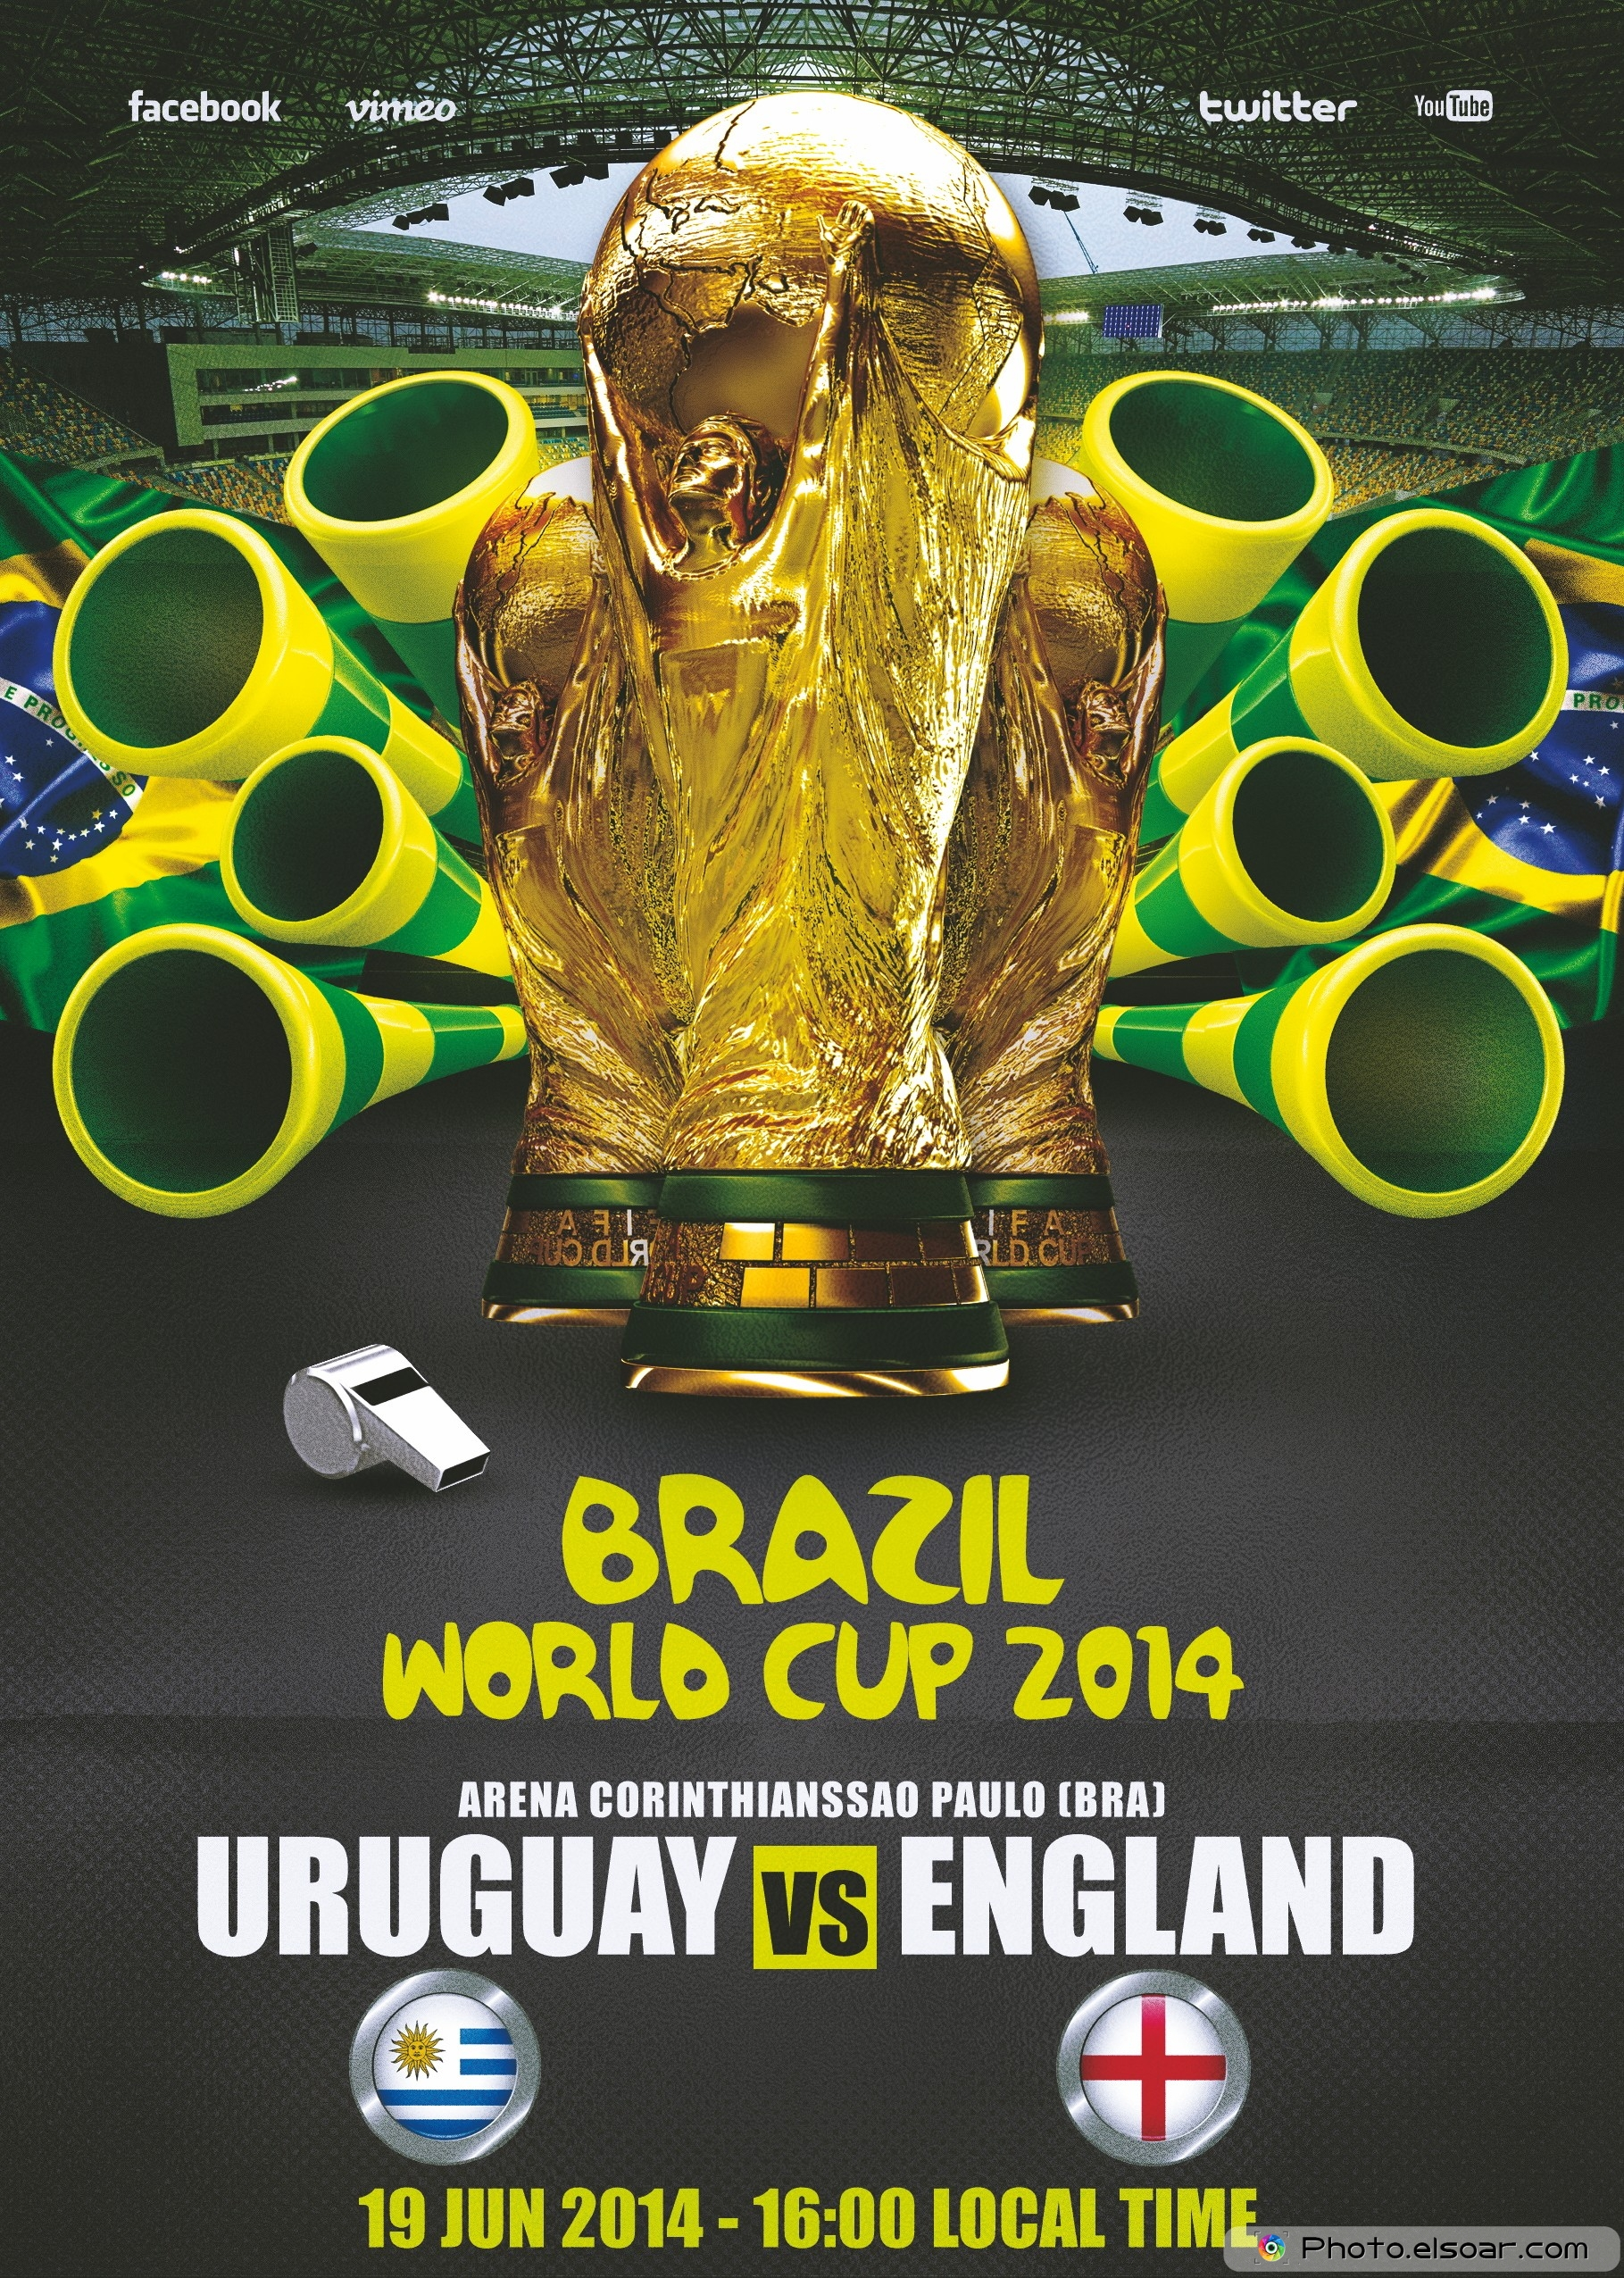 England vs uruguay – world cup 2014 – 19 jun 2014 – 16:00 local